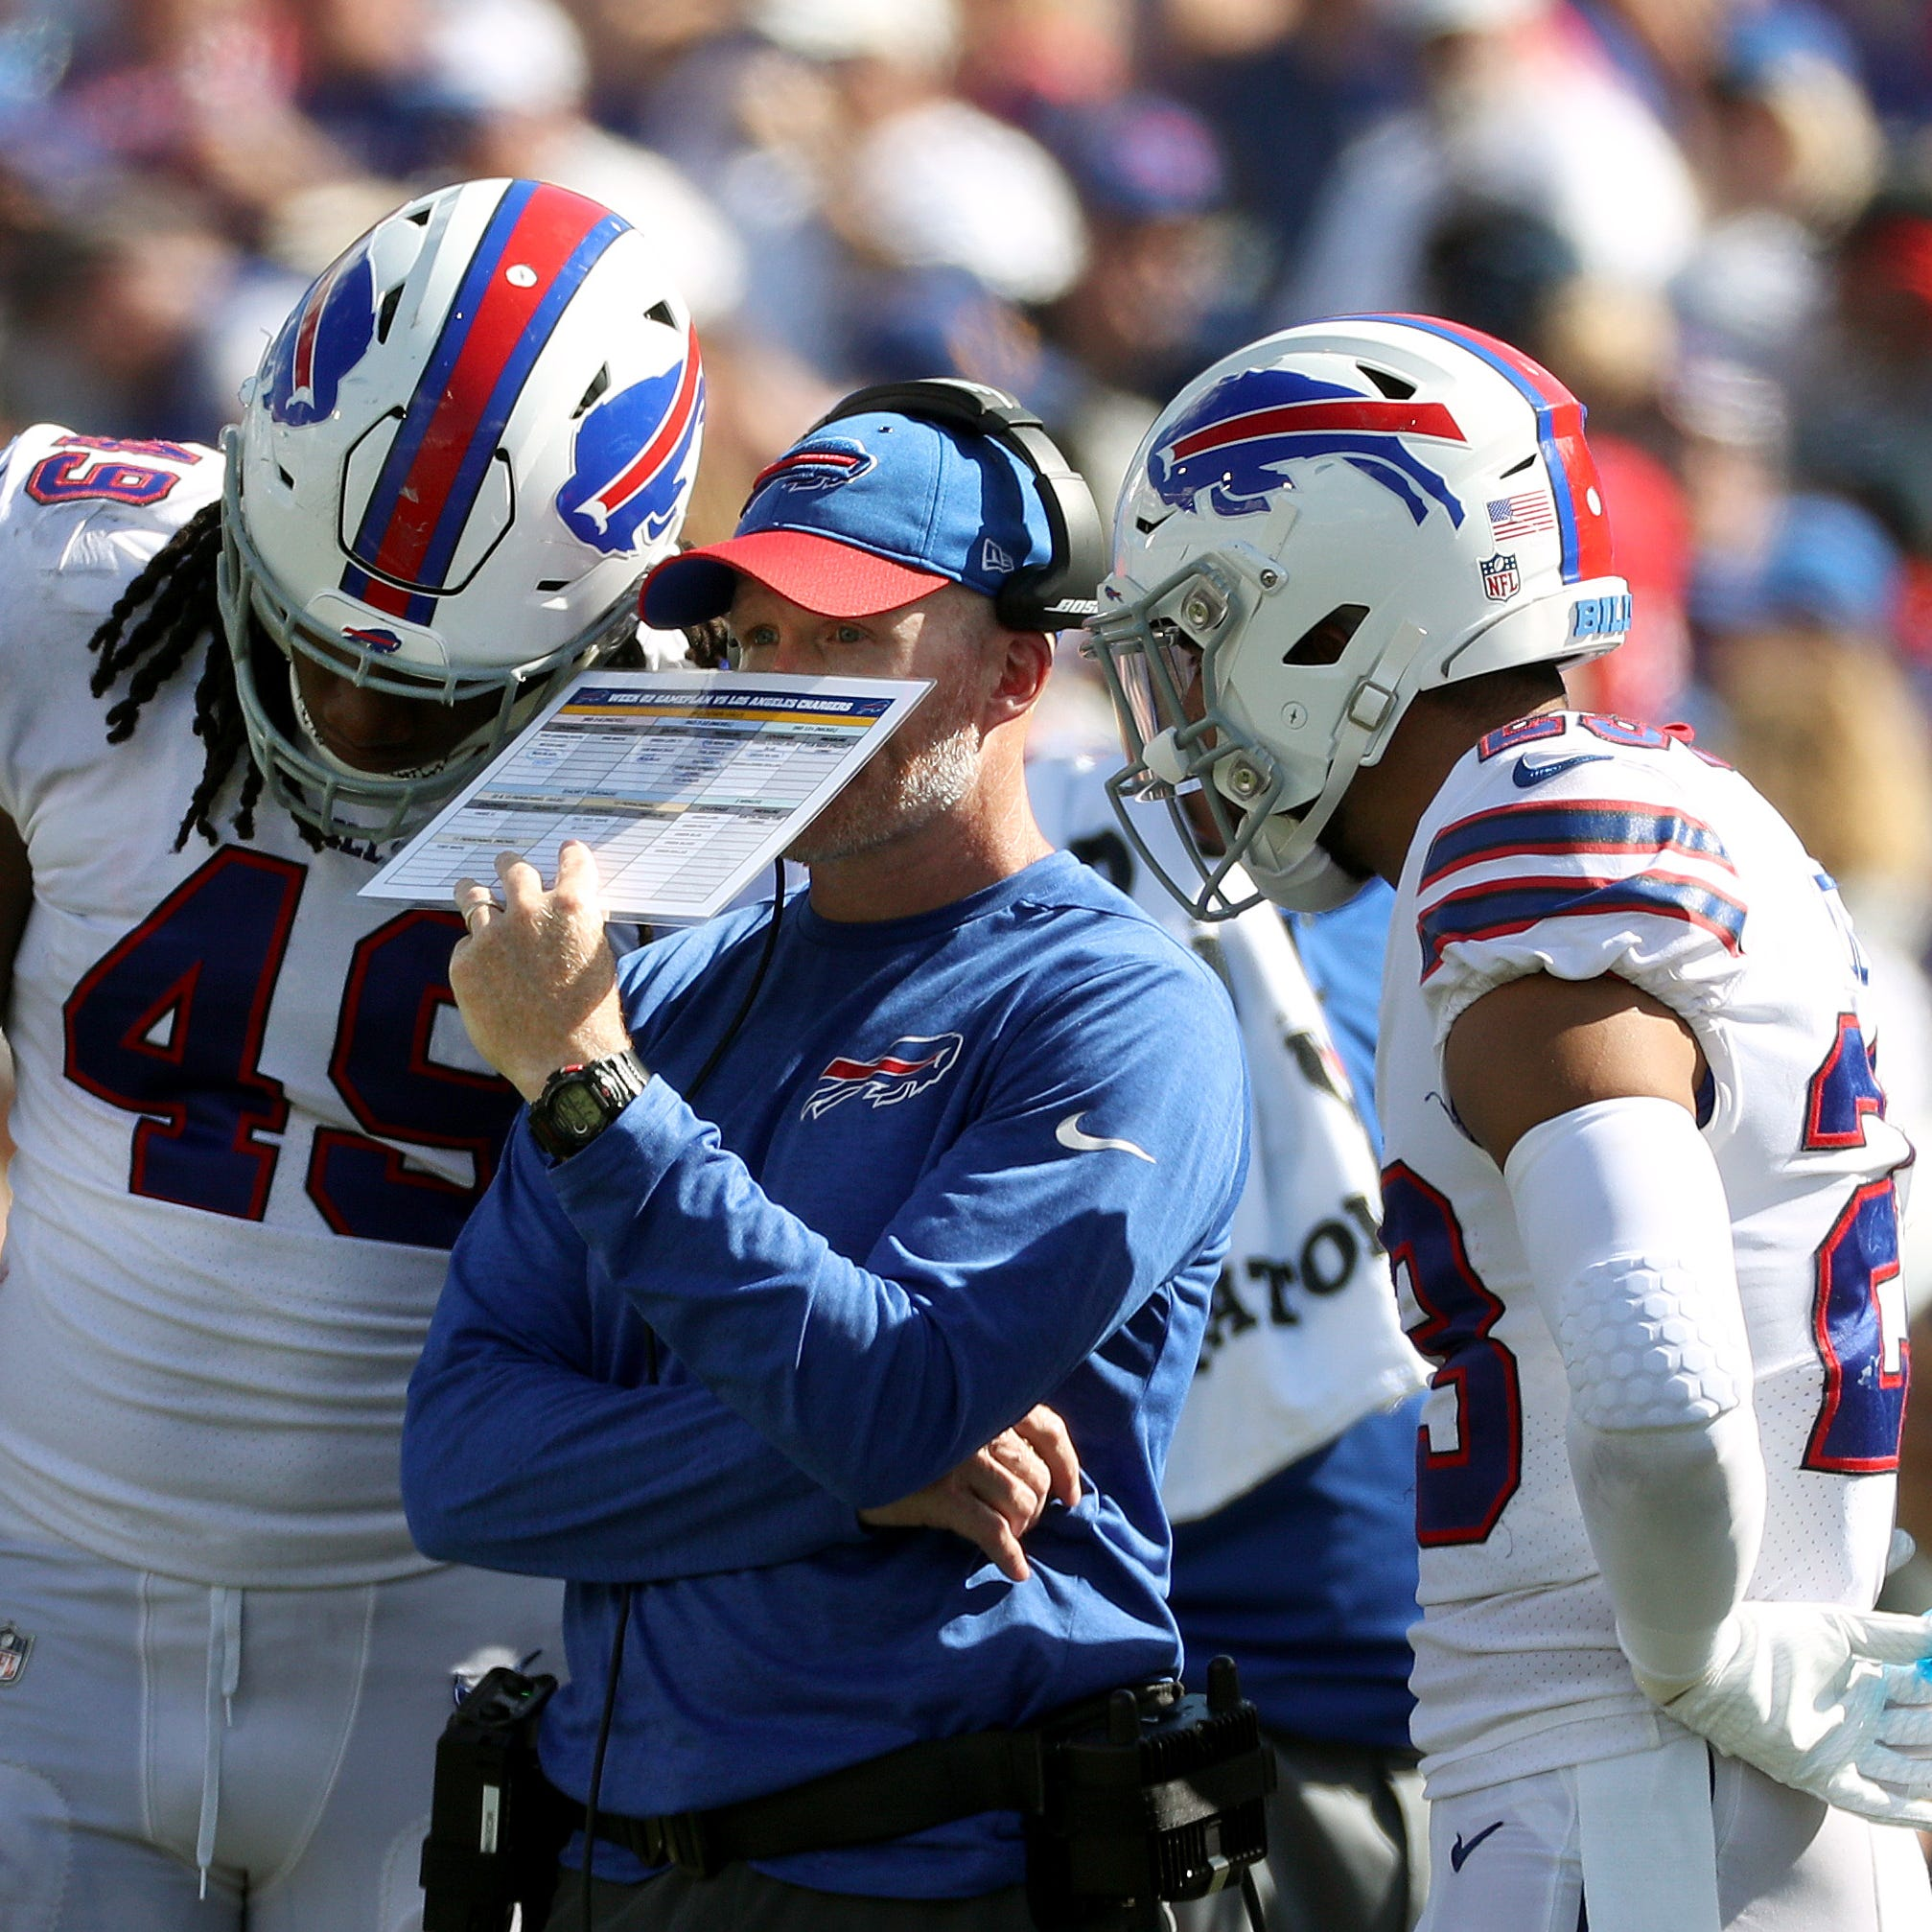 Roth: Bills coach Sean McDermott needs to let Leslie Frazier do his job